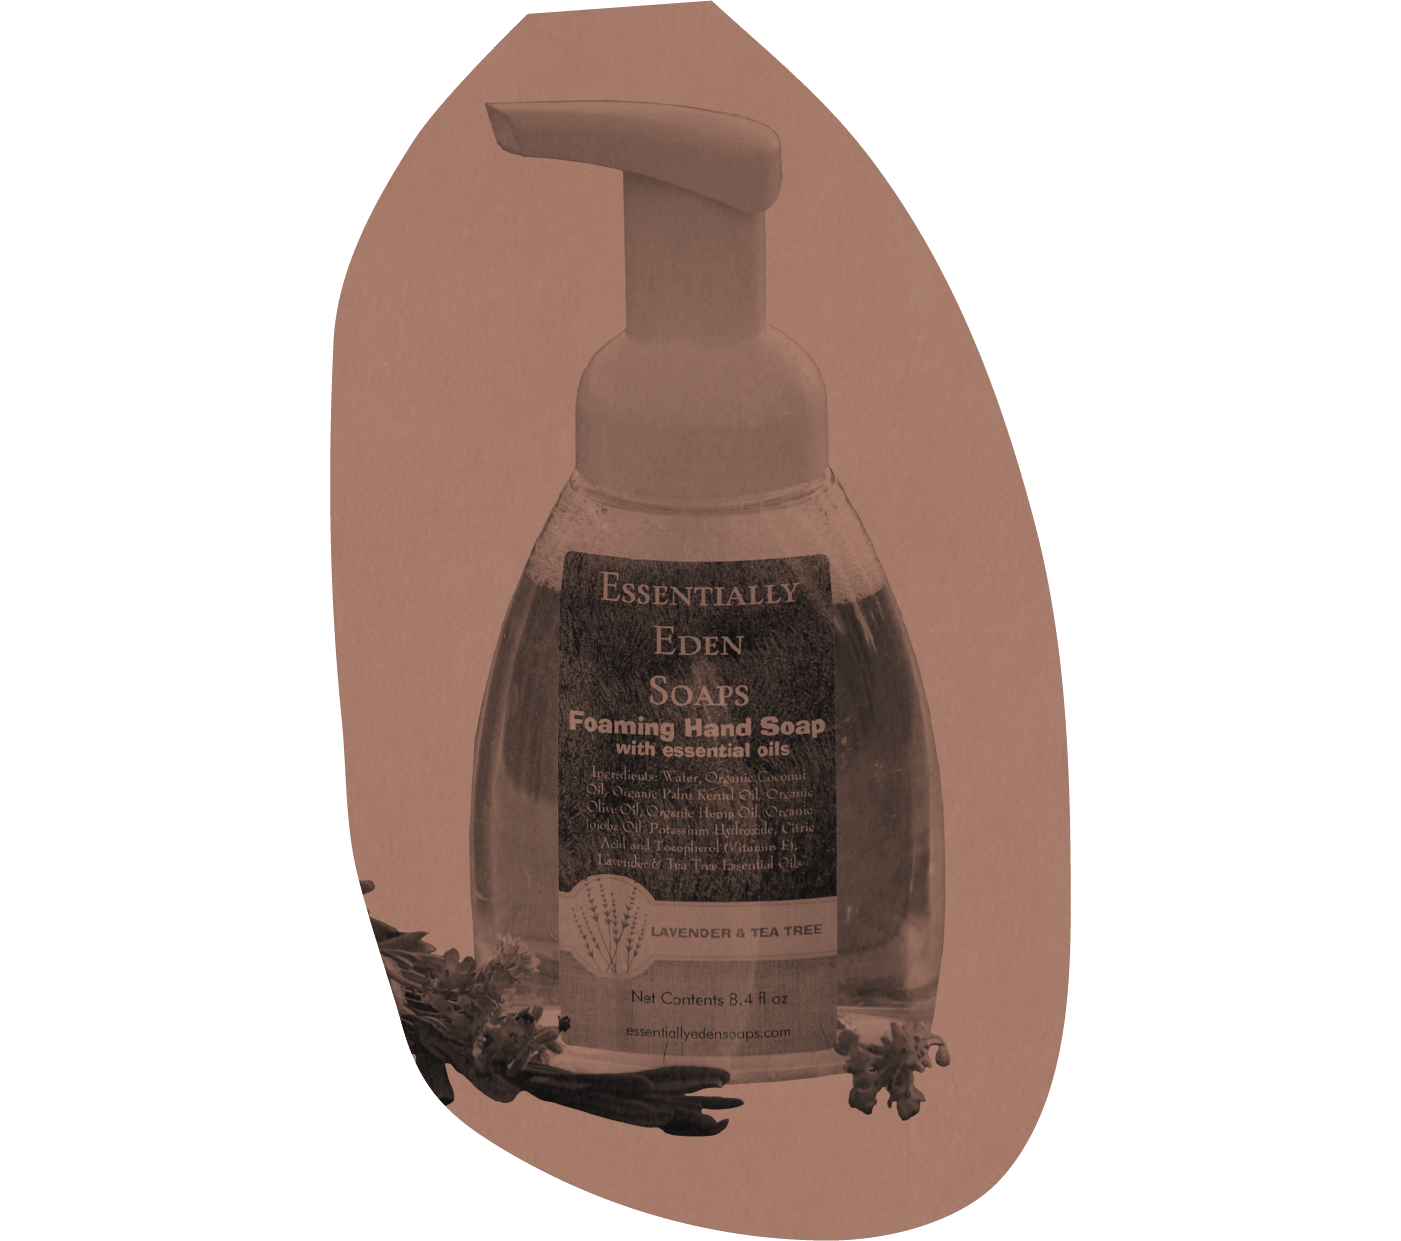 Foaming Hand Soap, Essentially Eden Soaps